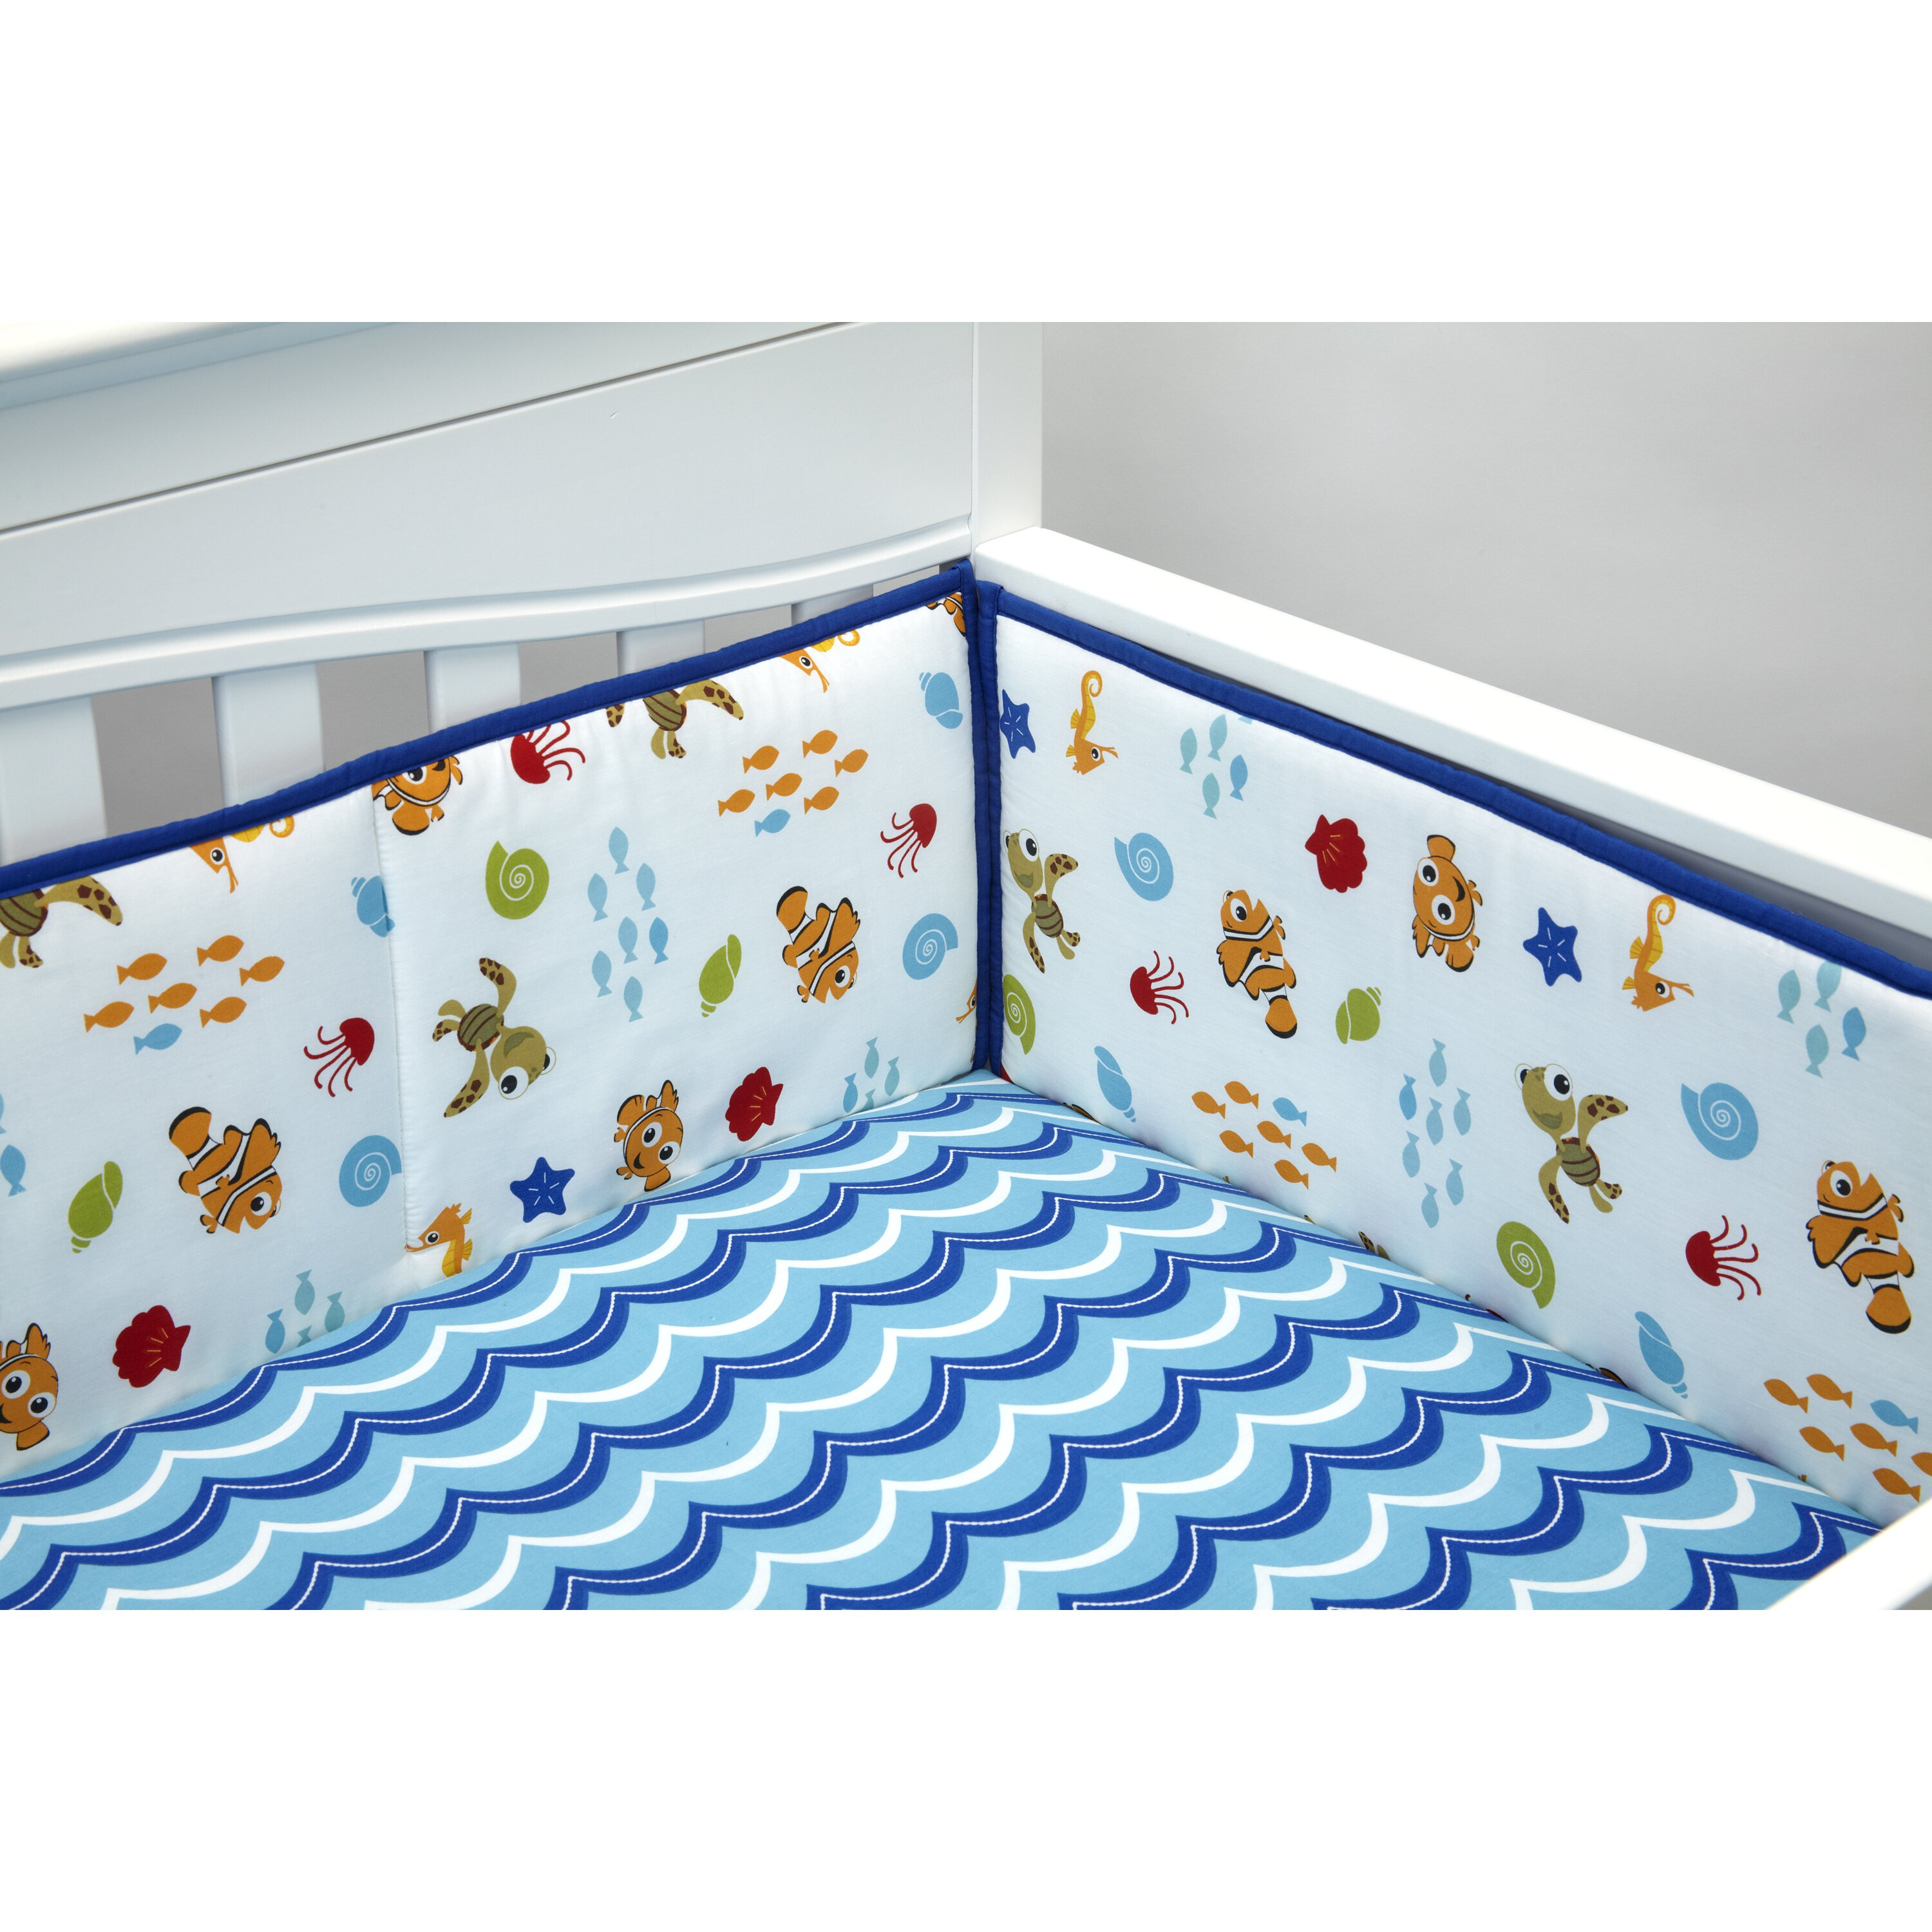 Gocrib adventure crib for sale - Disney Baby Nemo S Wavy Days Crib Bumper